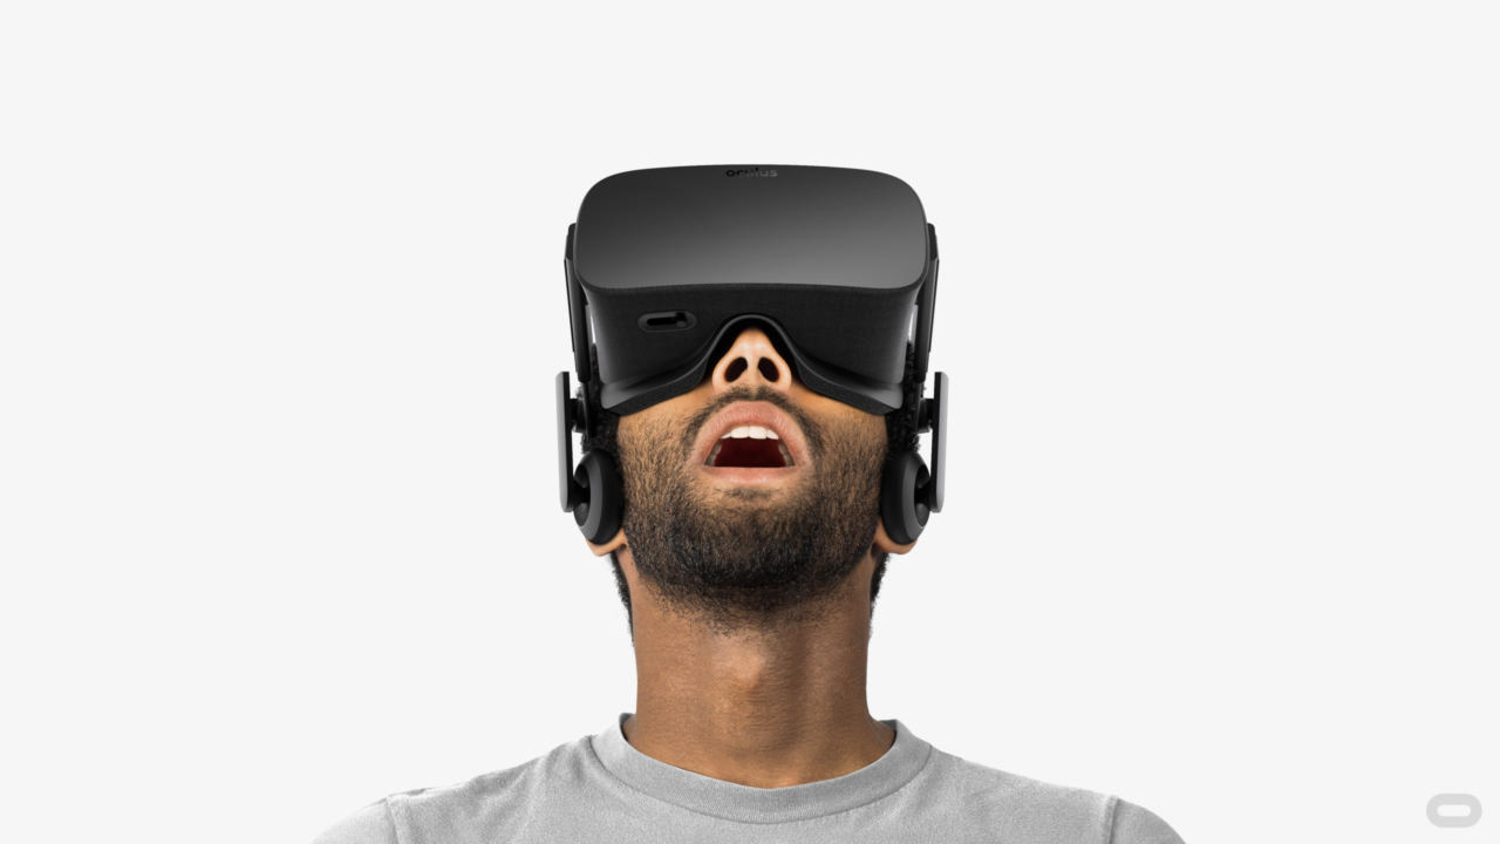 More Juicy Oculus Rift Details!